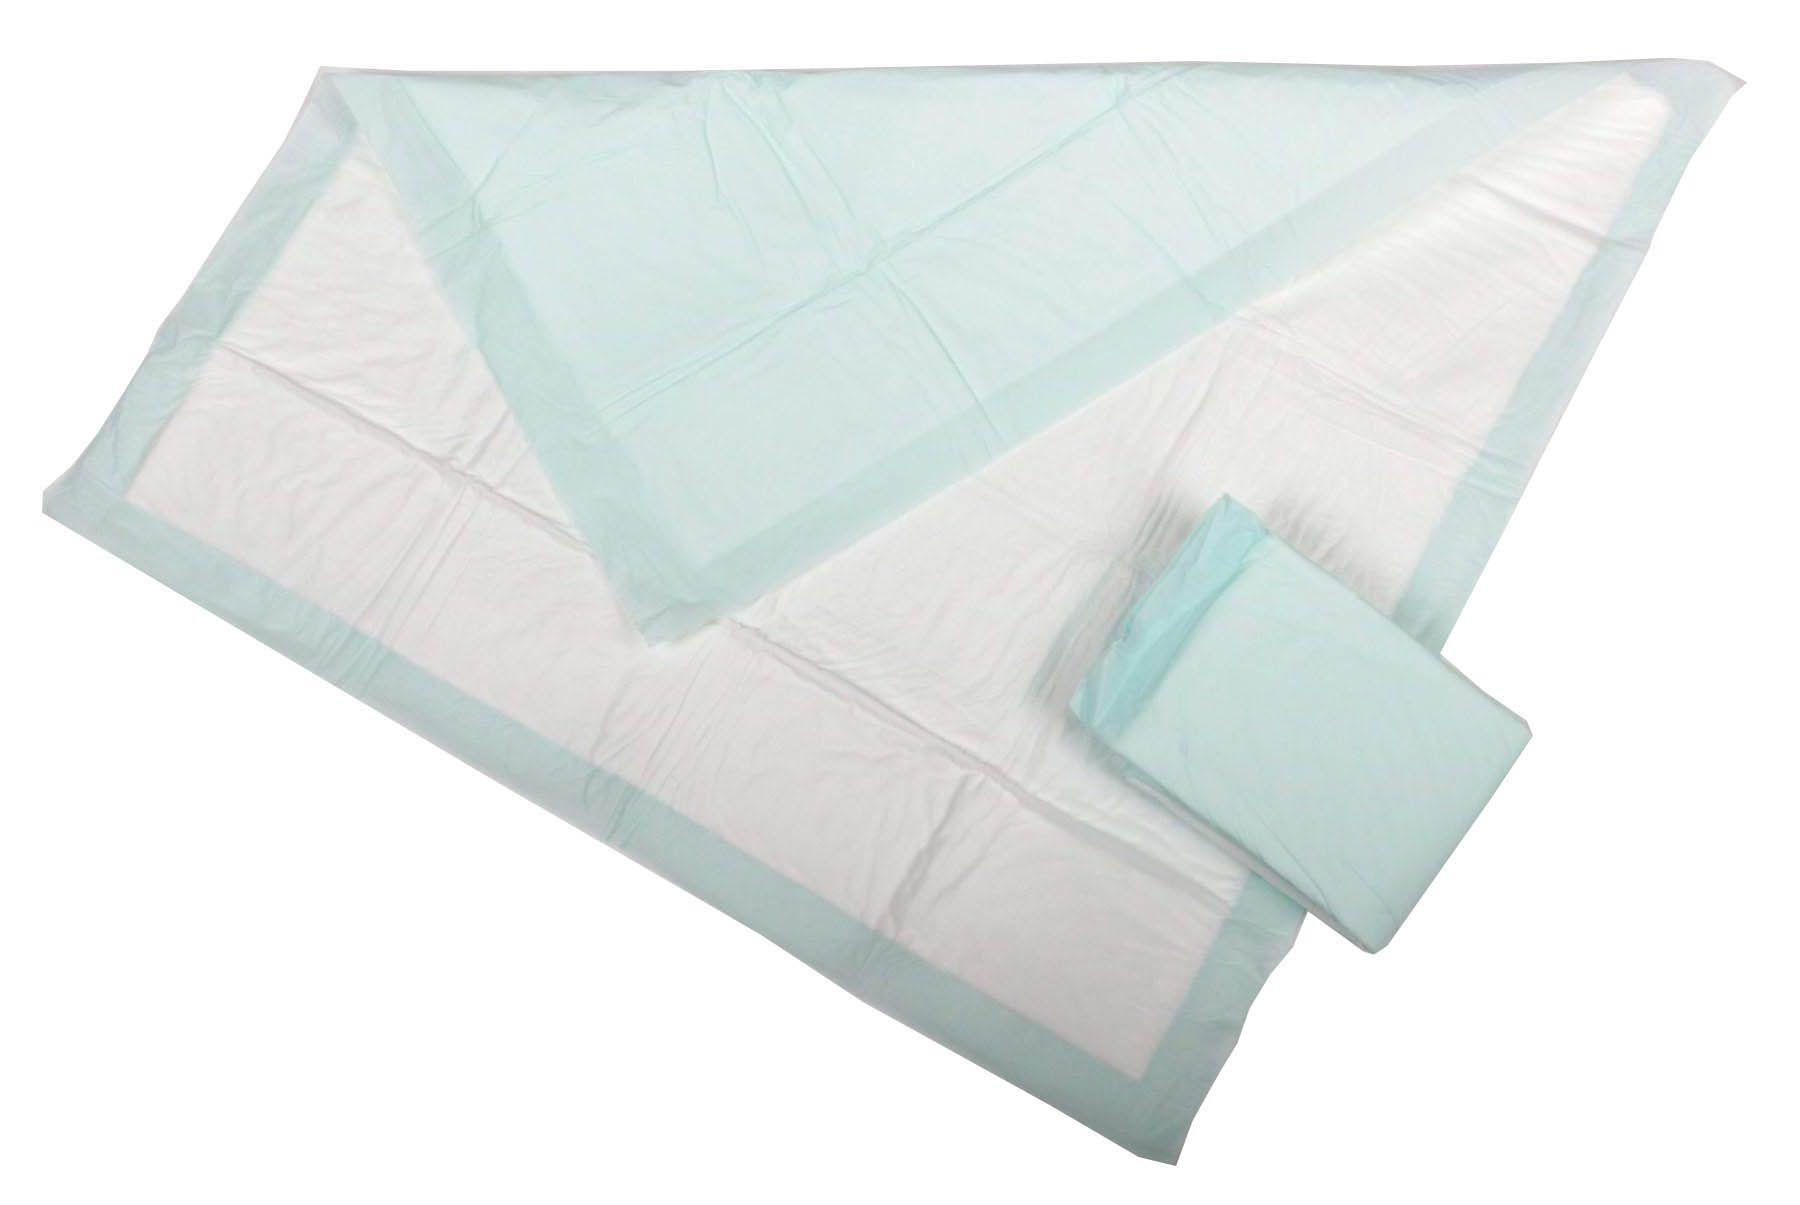 Medline Protection Plus Polymer Underpad - Dlux, Prot Plus, 23X36